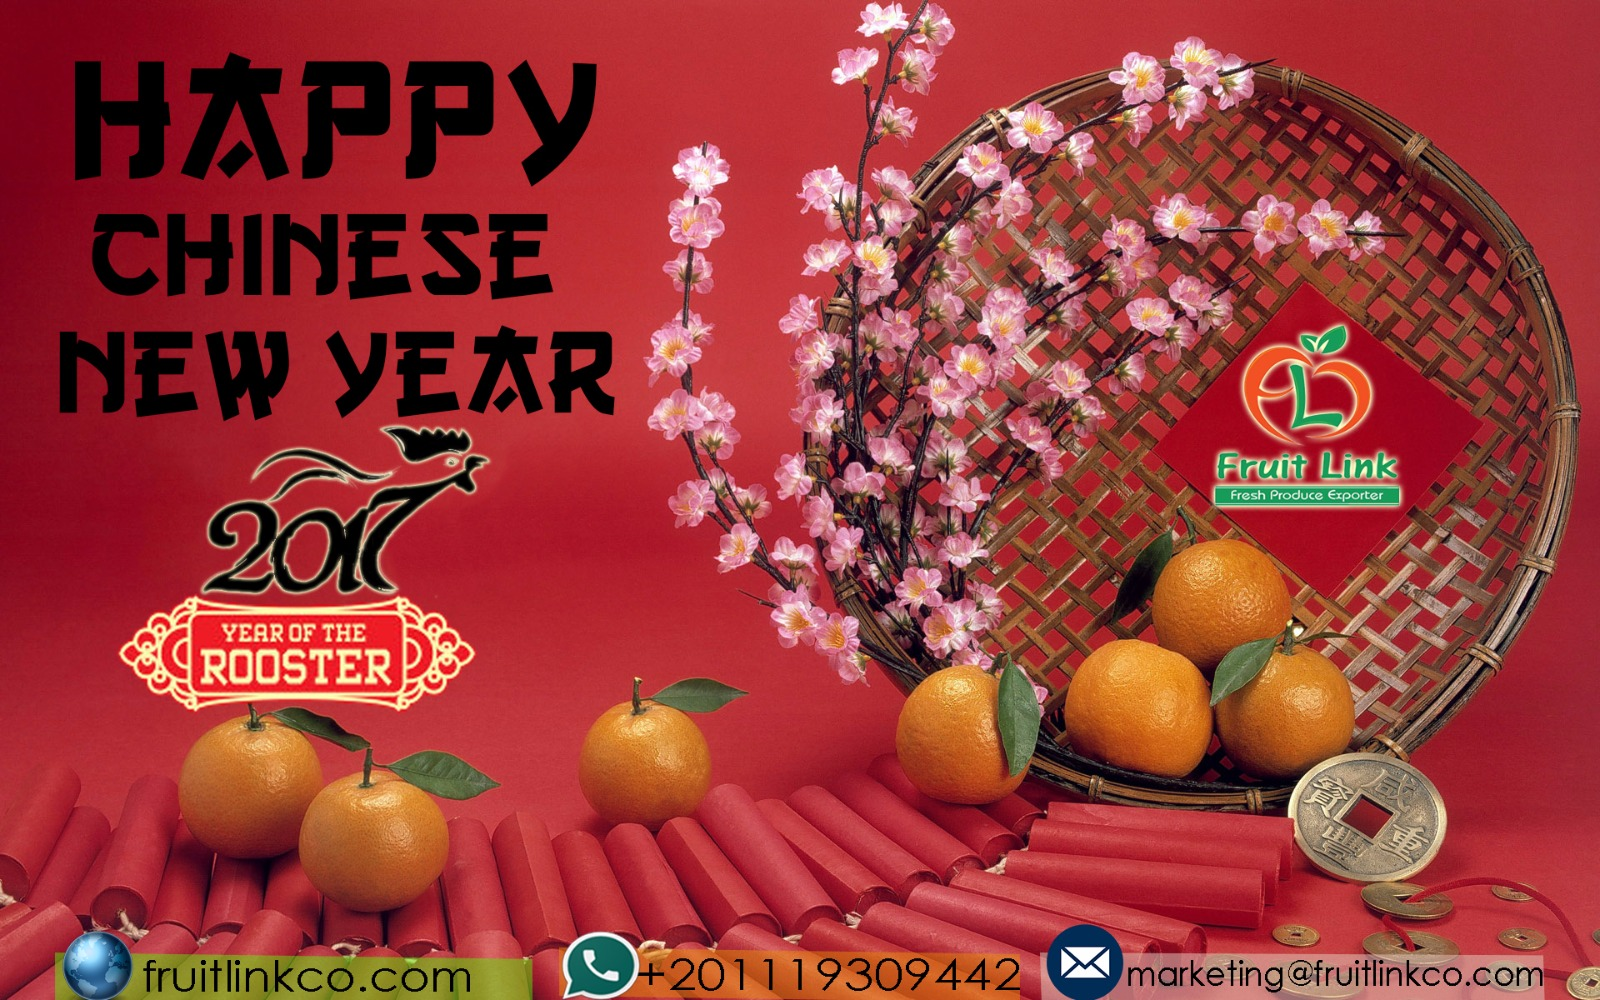 Happy chinese new year lunar 2017 fruit link fresh produce happy chinese new year lunar 2017 m4hsunfo